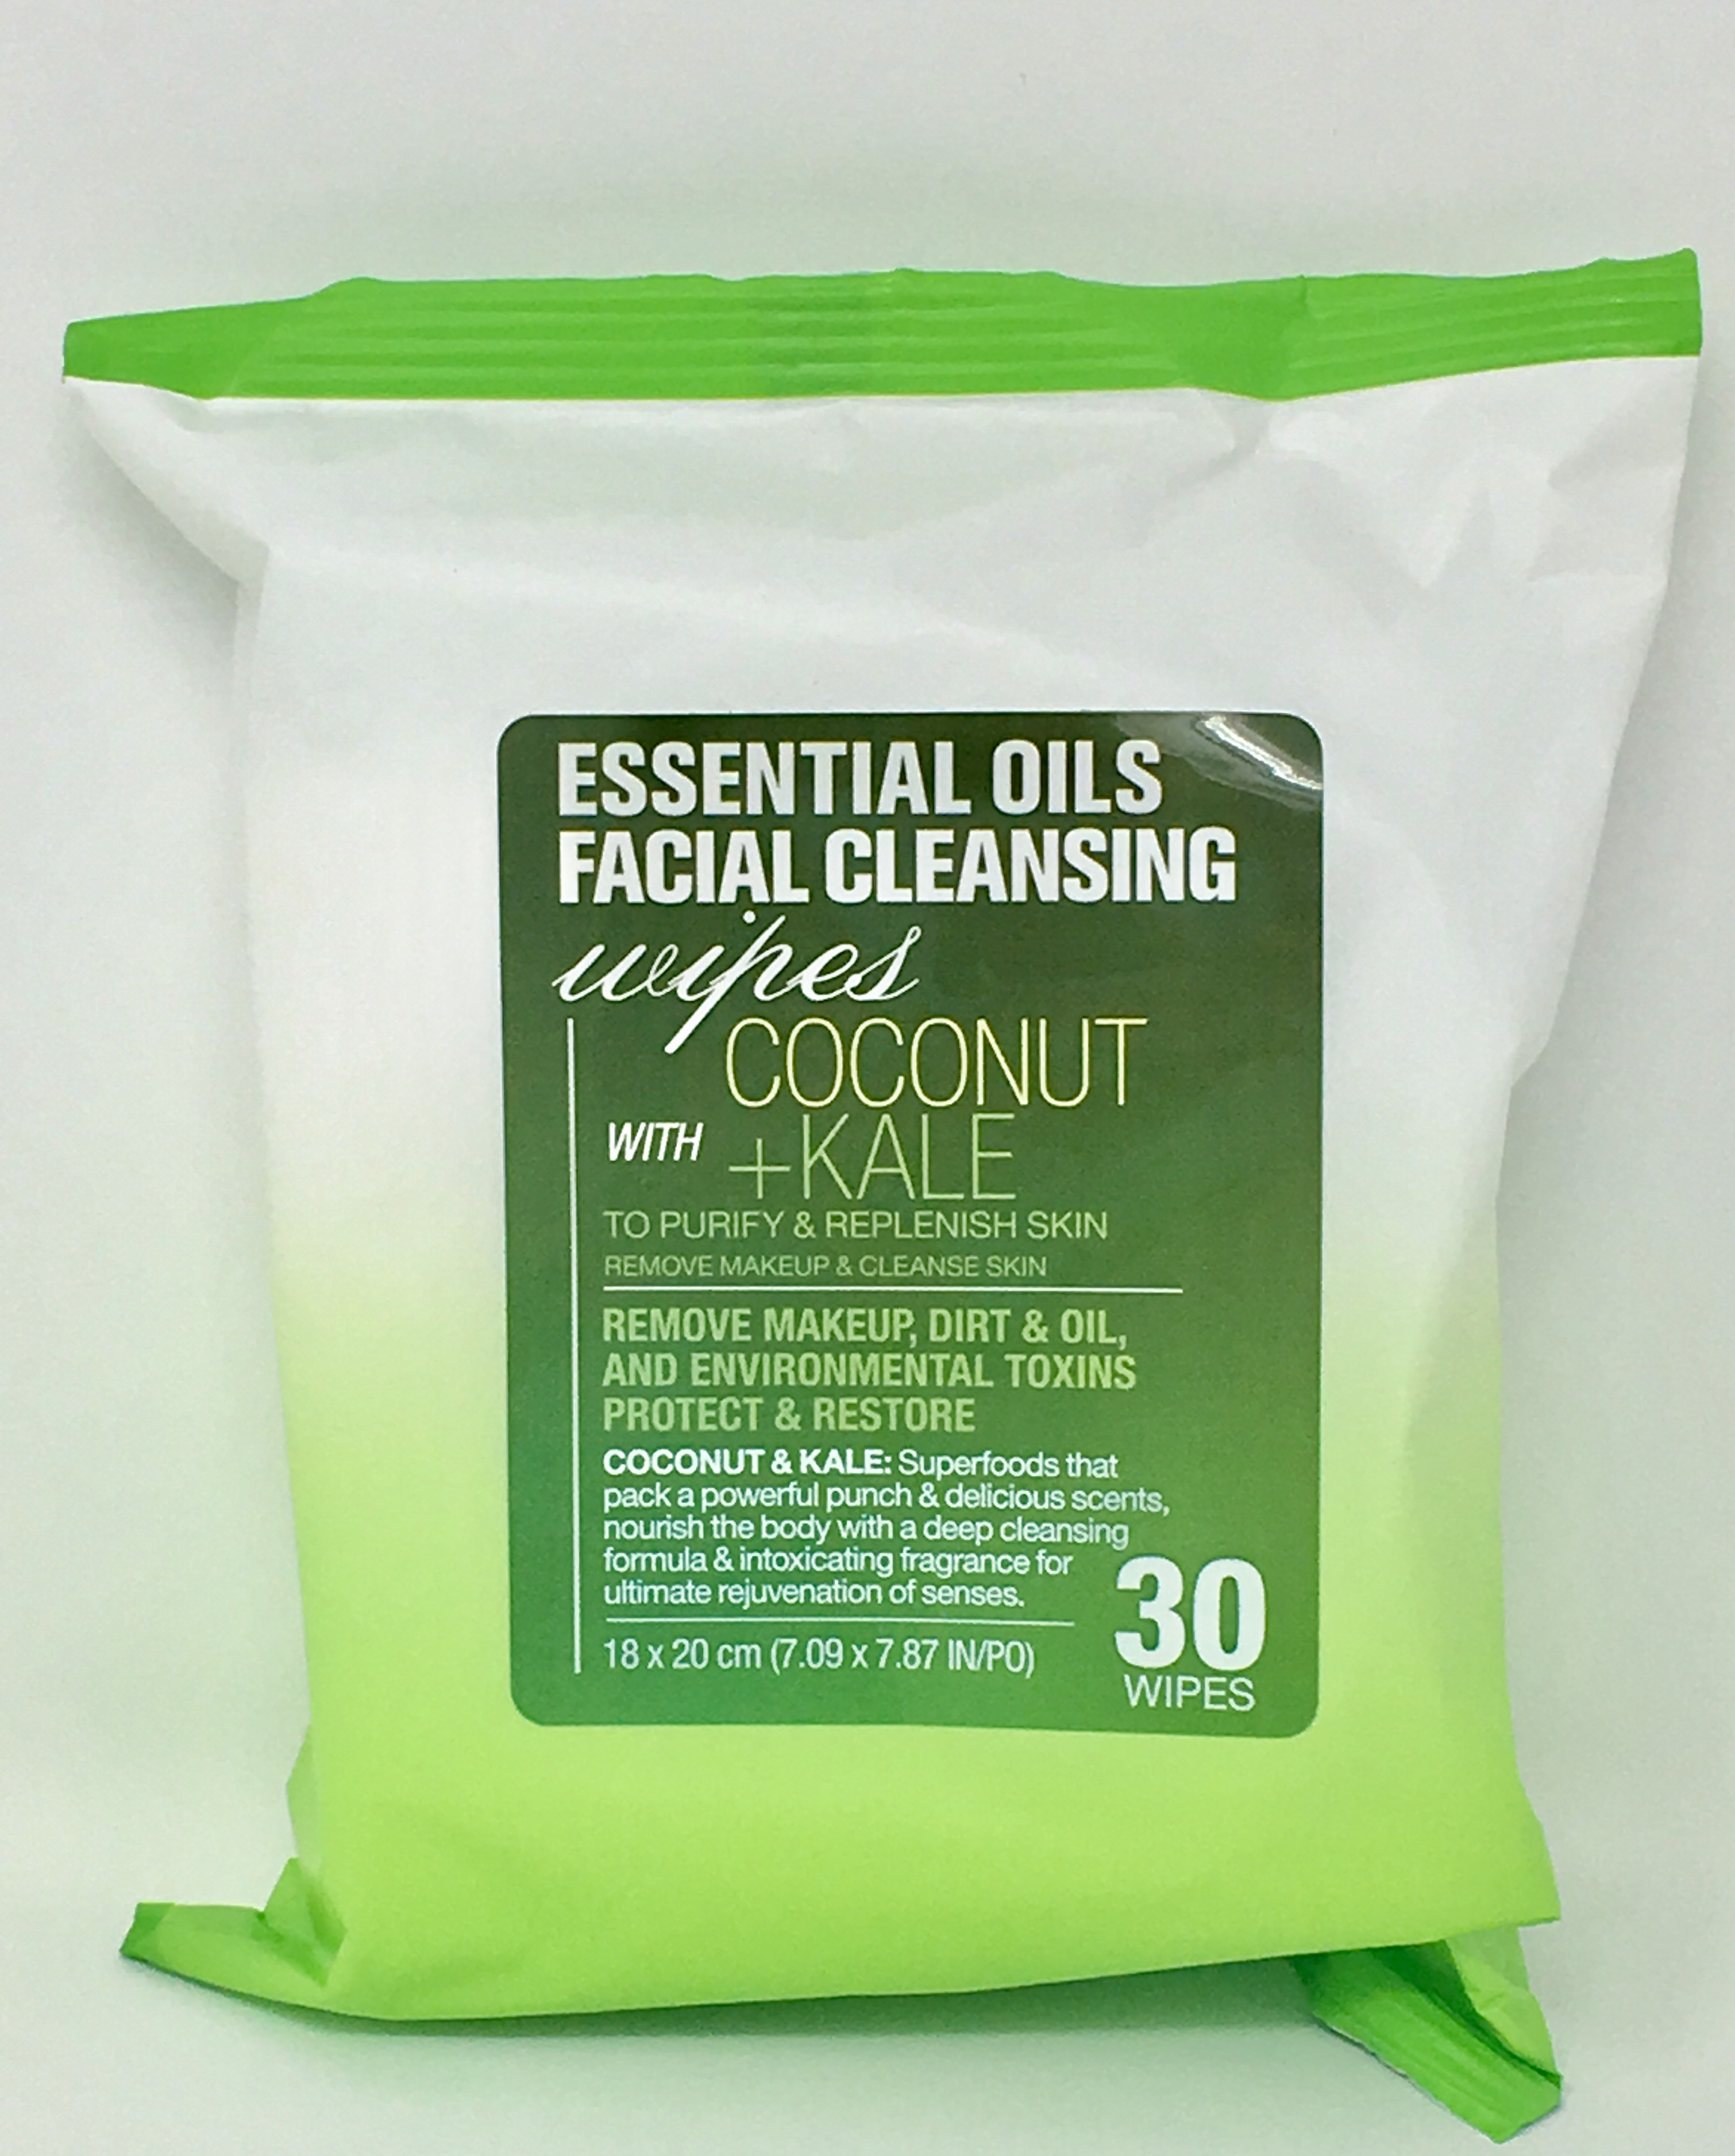 Wipe remove makeup Essential Oils Facial Cleansing coconut with Kale 30 wipe one pack Aveeno Positively Radiant Intensive Night Cream With Vitamin B3, 1.7 Oz